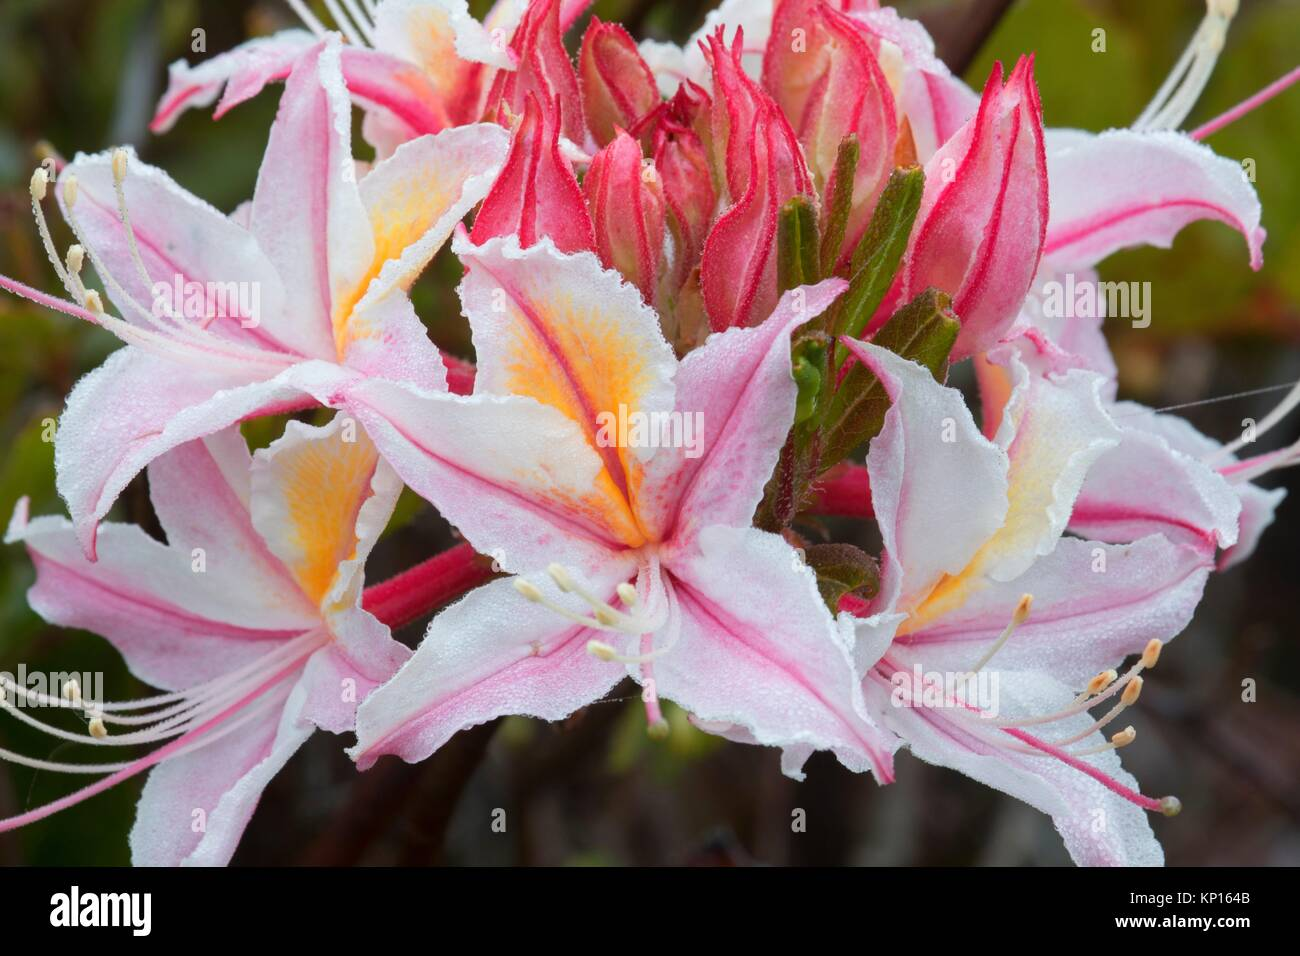 Western azalea (Rhododendron occidentale), Otter Point State Park, Oregon. - Stock Image